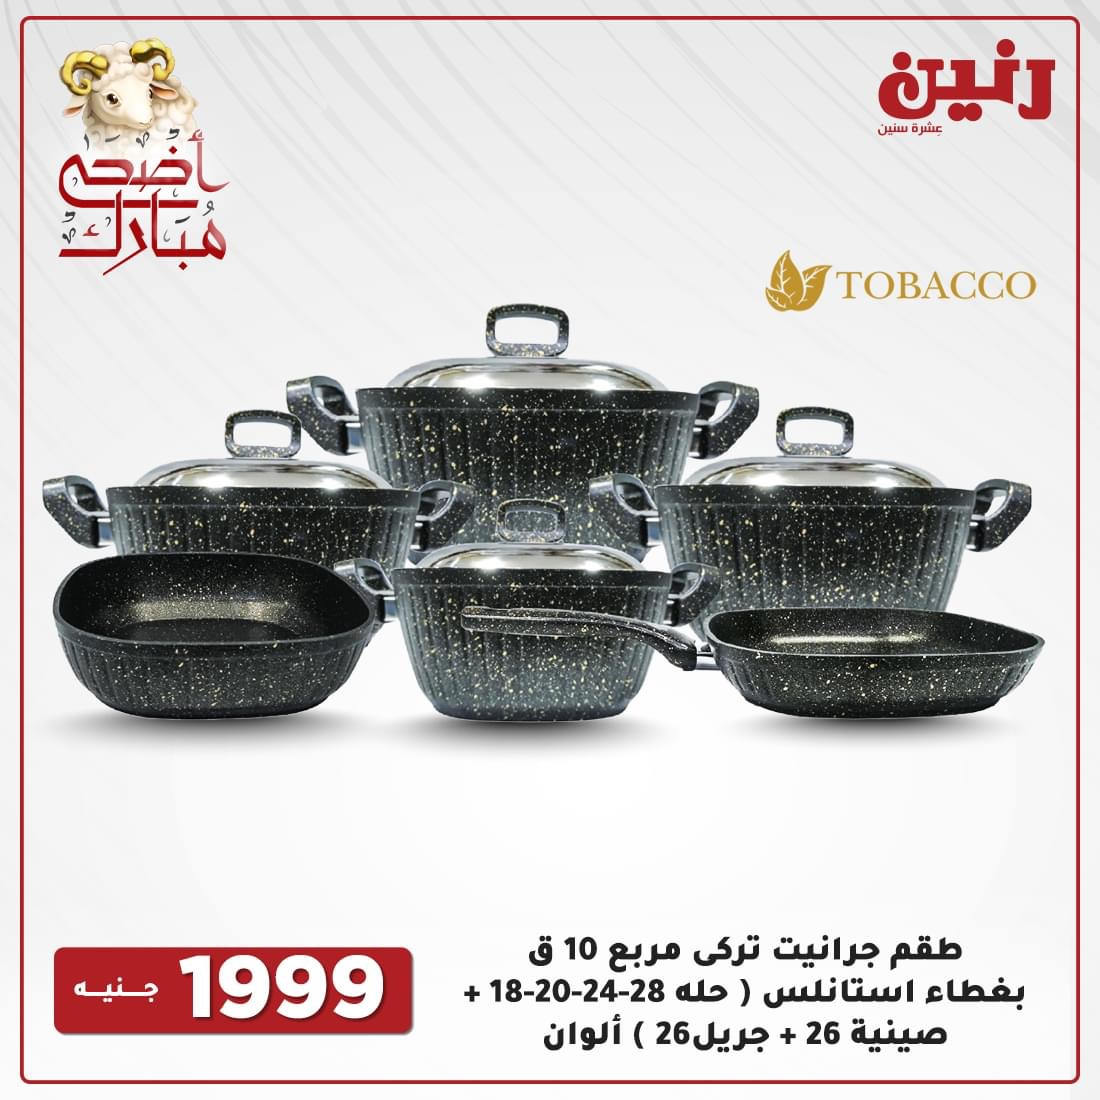 Raneen offers today for appliances and household appliances from July 22 to 24, 2021 31